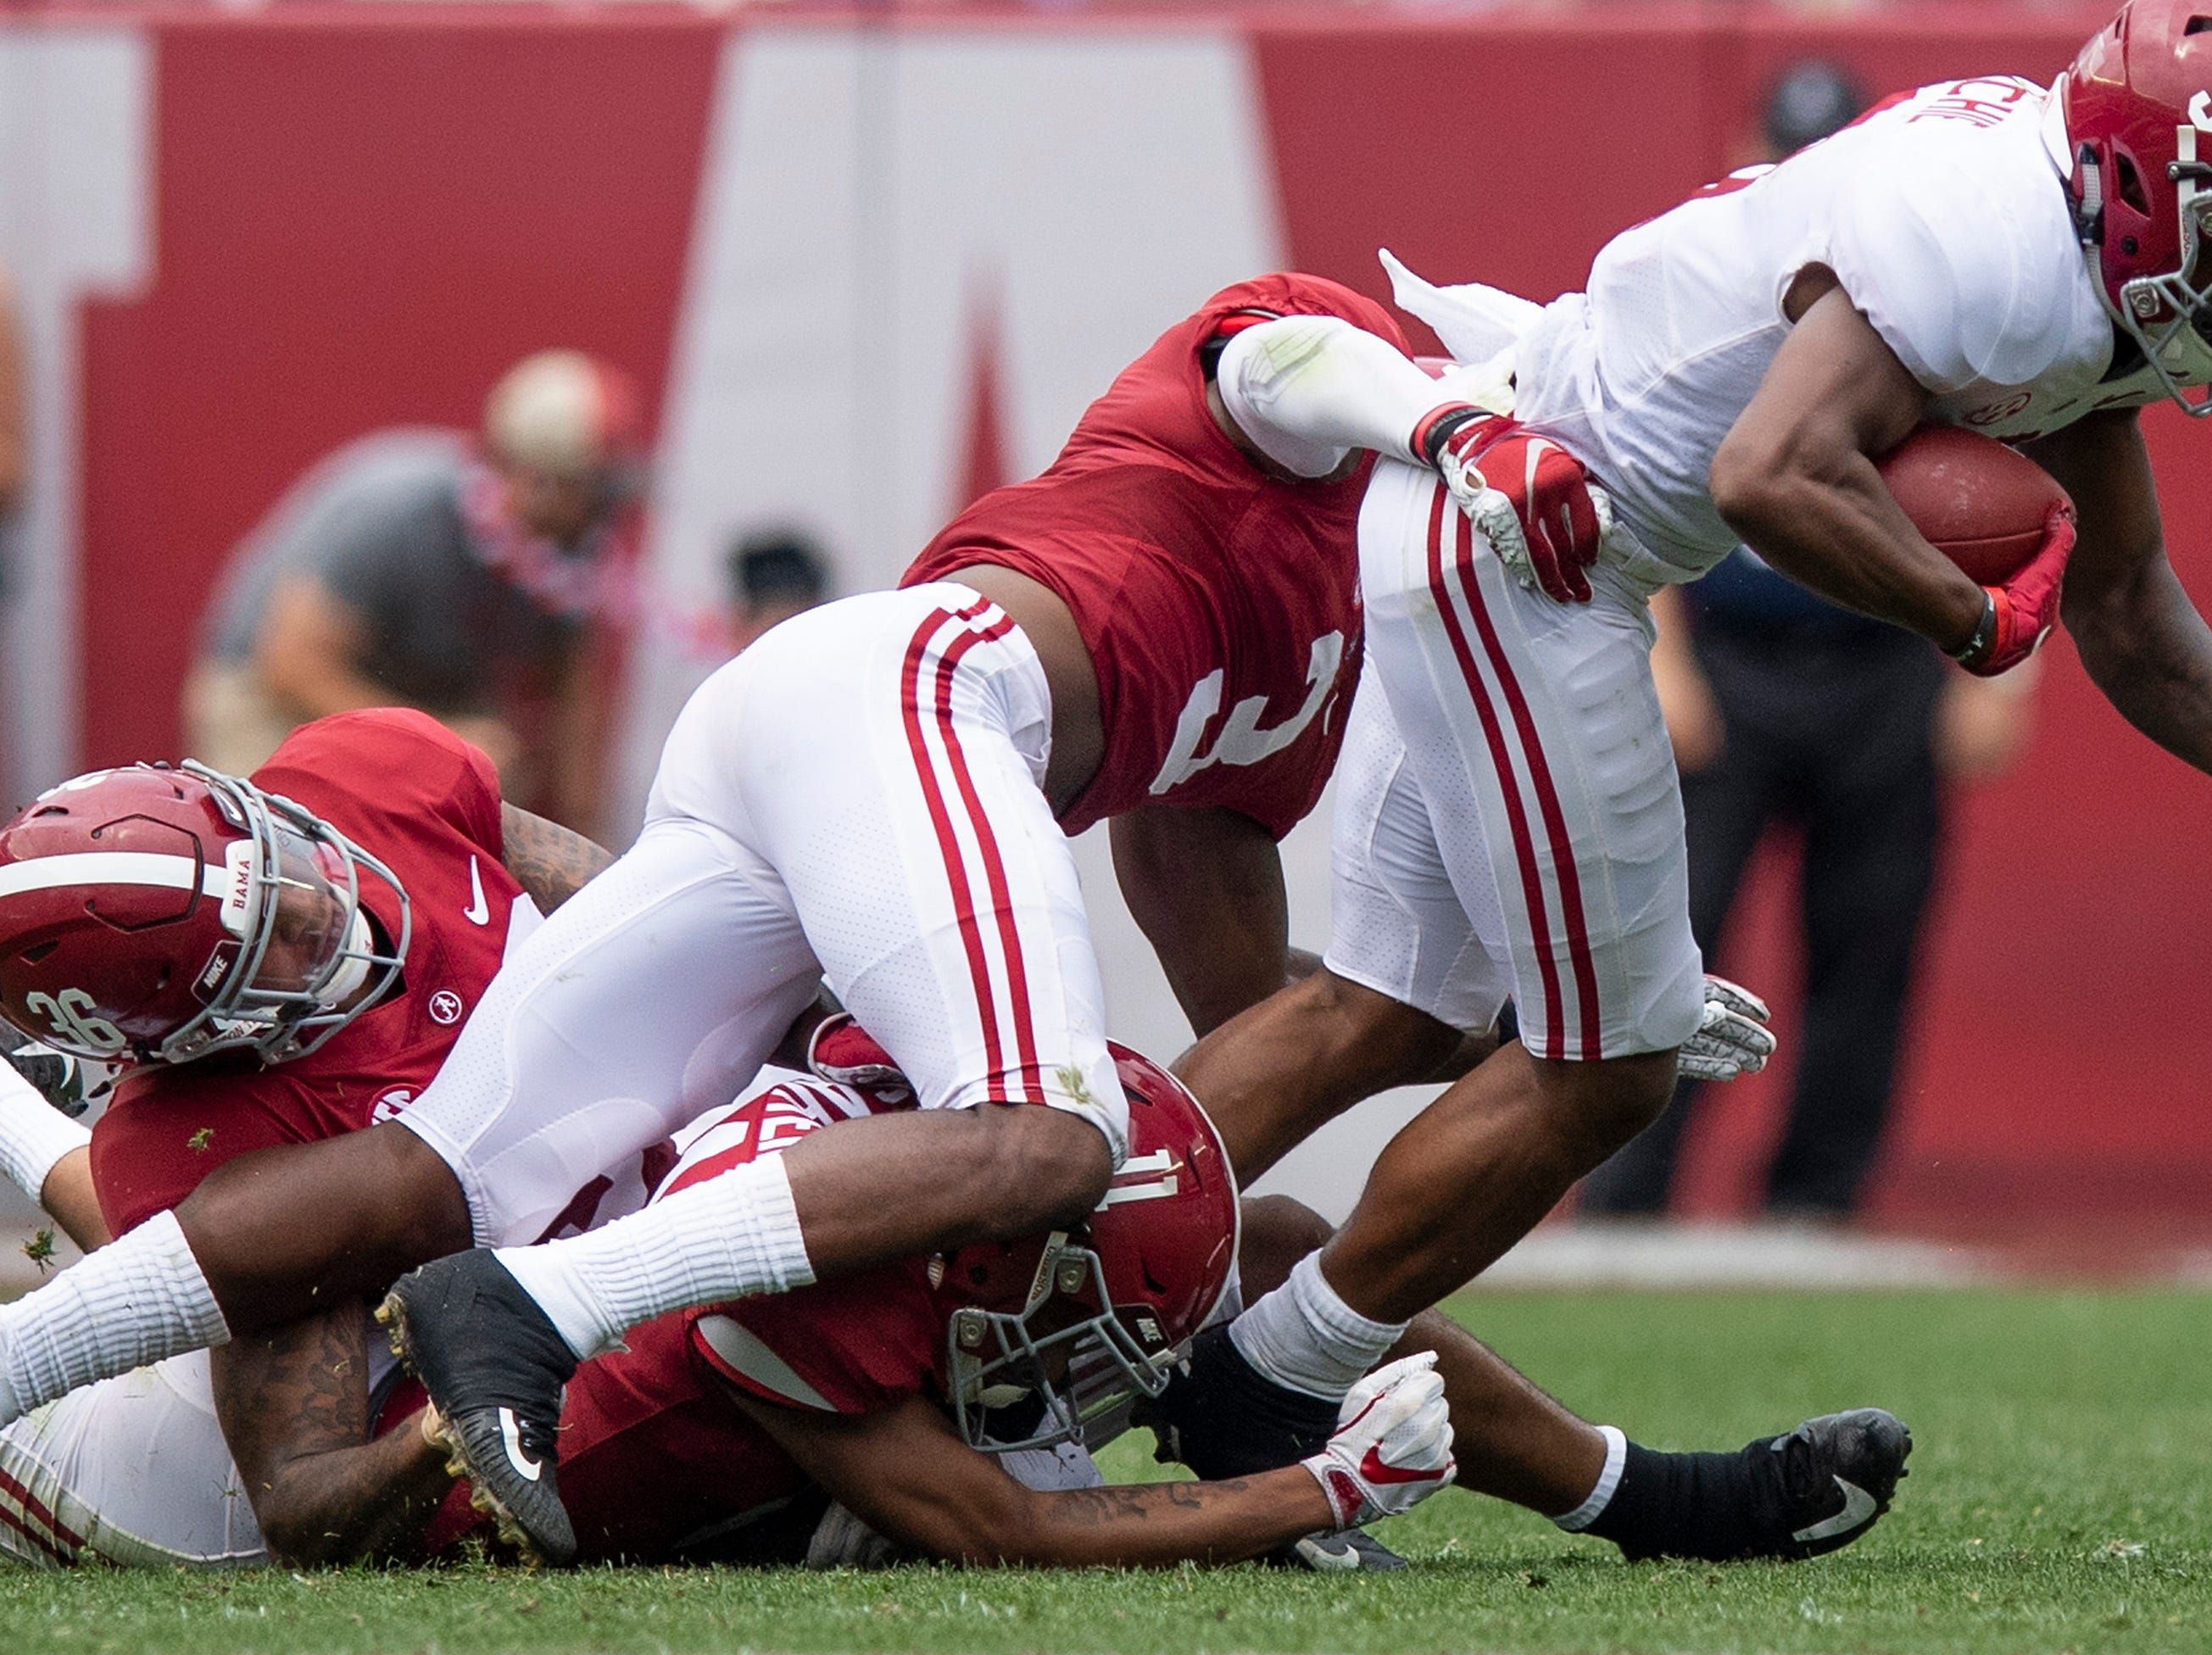 Wide receiver John Metchie (3) is stopped by defensive back Daniel Wright (3) and defensive back Scooby Carter (11) during second half action in the Alabama A-Day spring football scrimmage game at Bryant Denny Stadium in Tuscaloosa, Ala., on Saturday April 13, 2019.